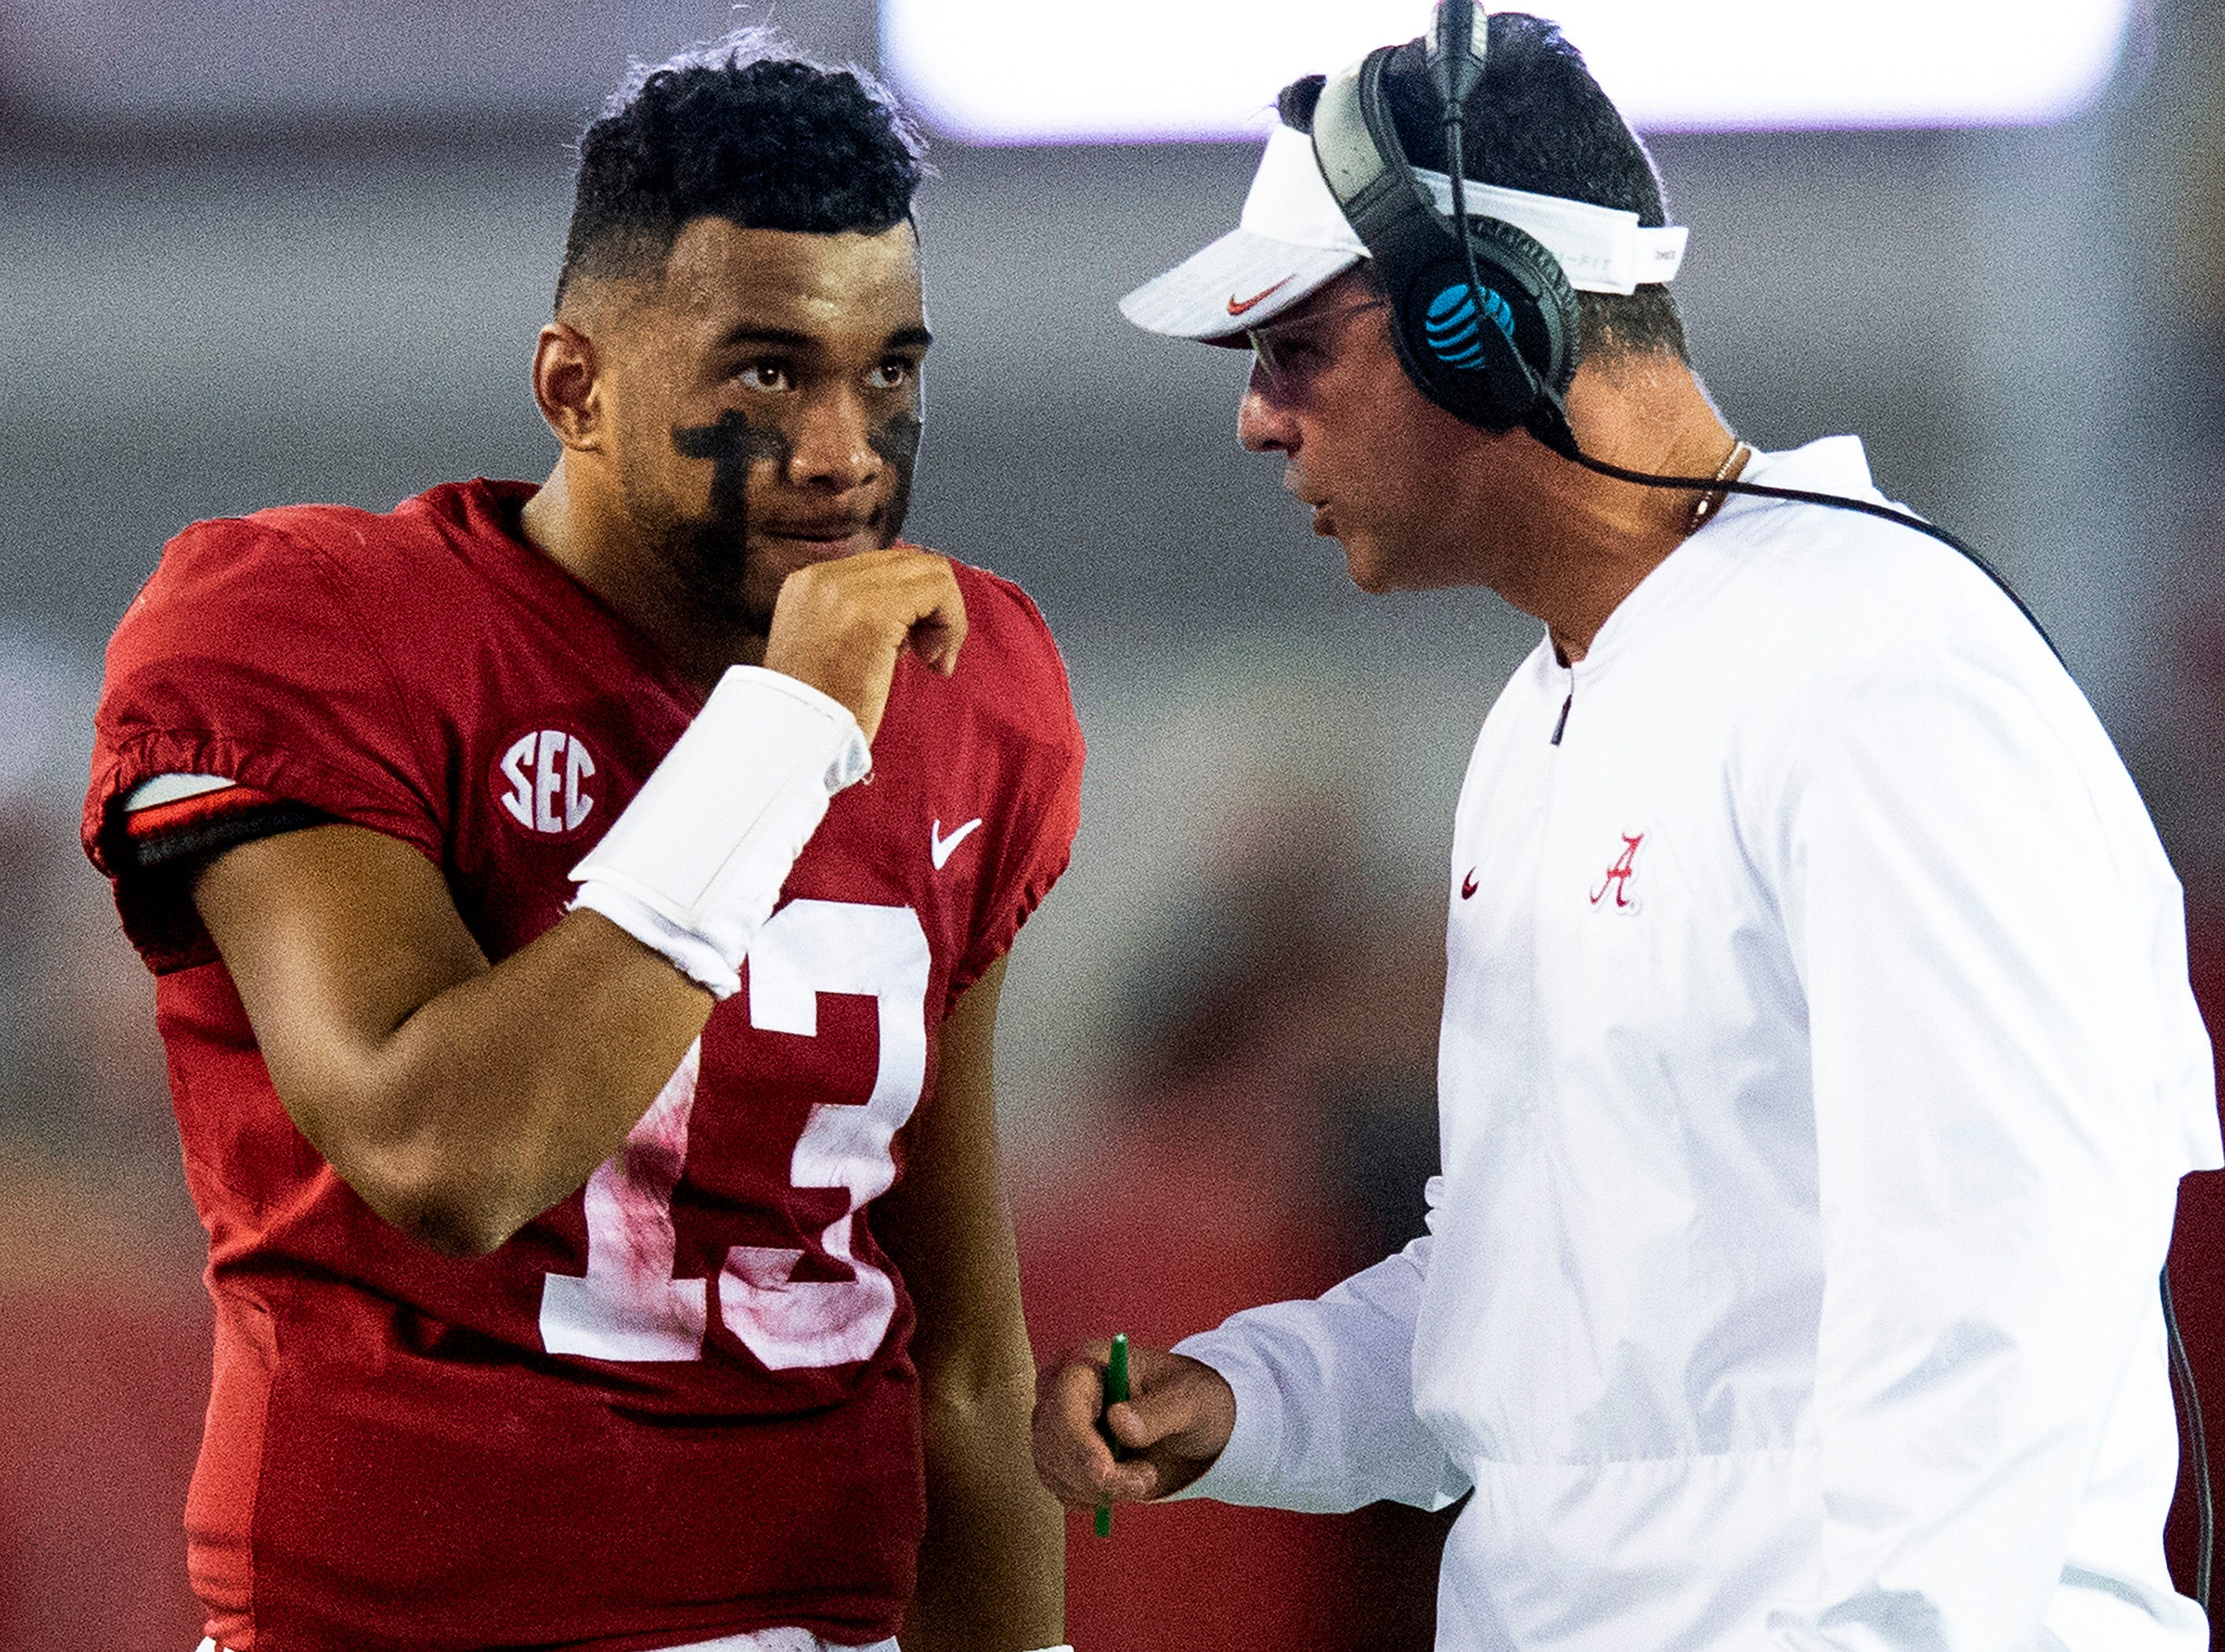 Alabama quarterback Tua Tagovailoa (13) talks with quarterbacks coach Dan Enos in first half action against Missouri at Bryant Denny Stadium in Tuscaloosa, Ala., on Saturday October 13, 2018.